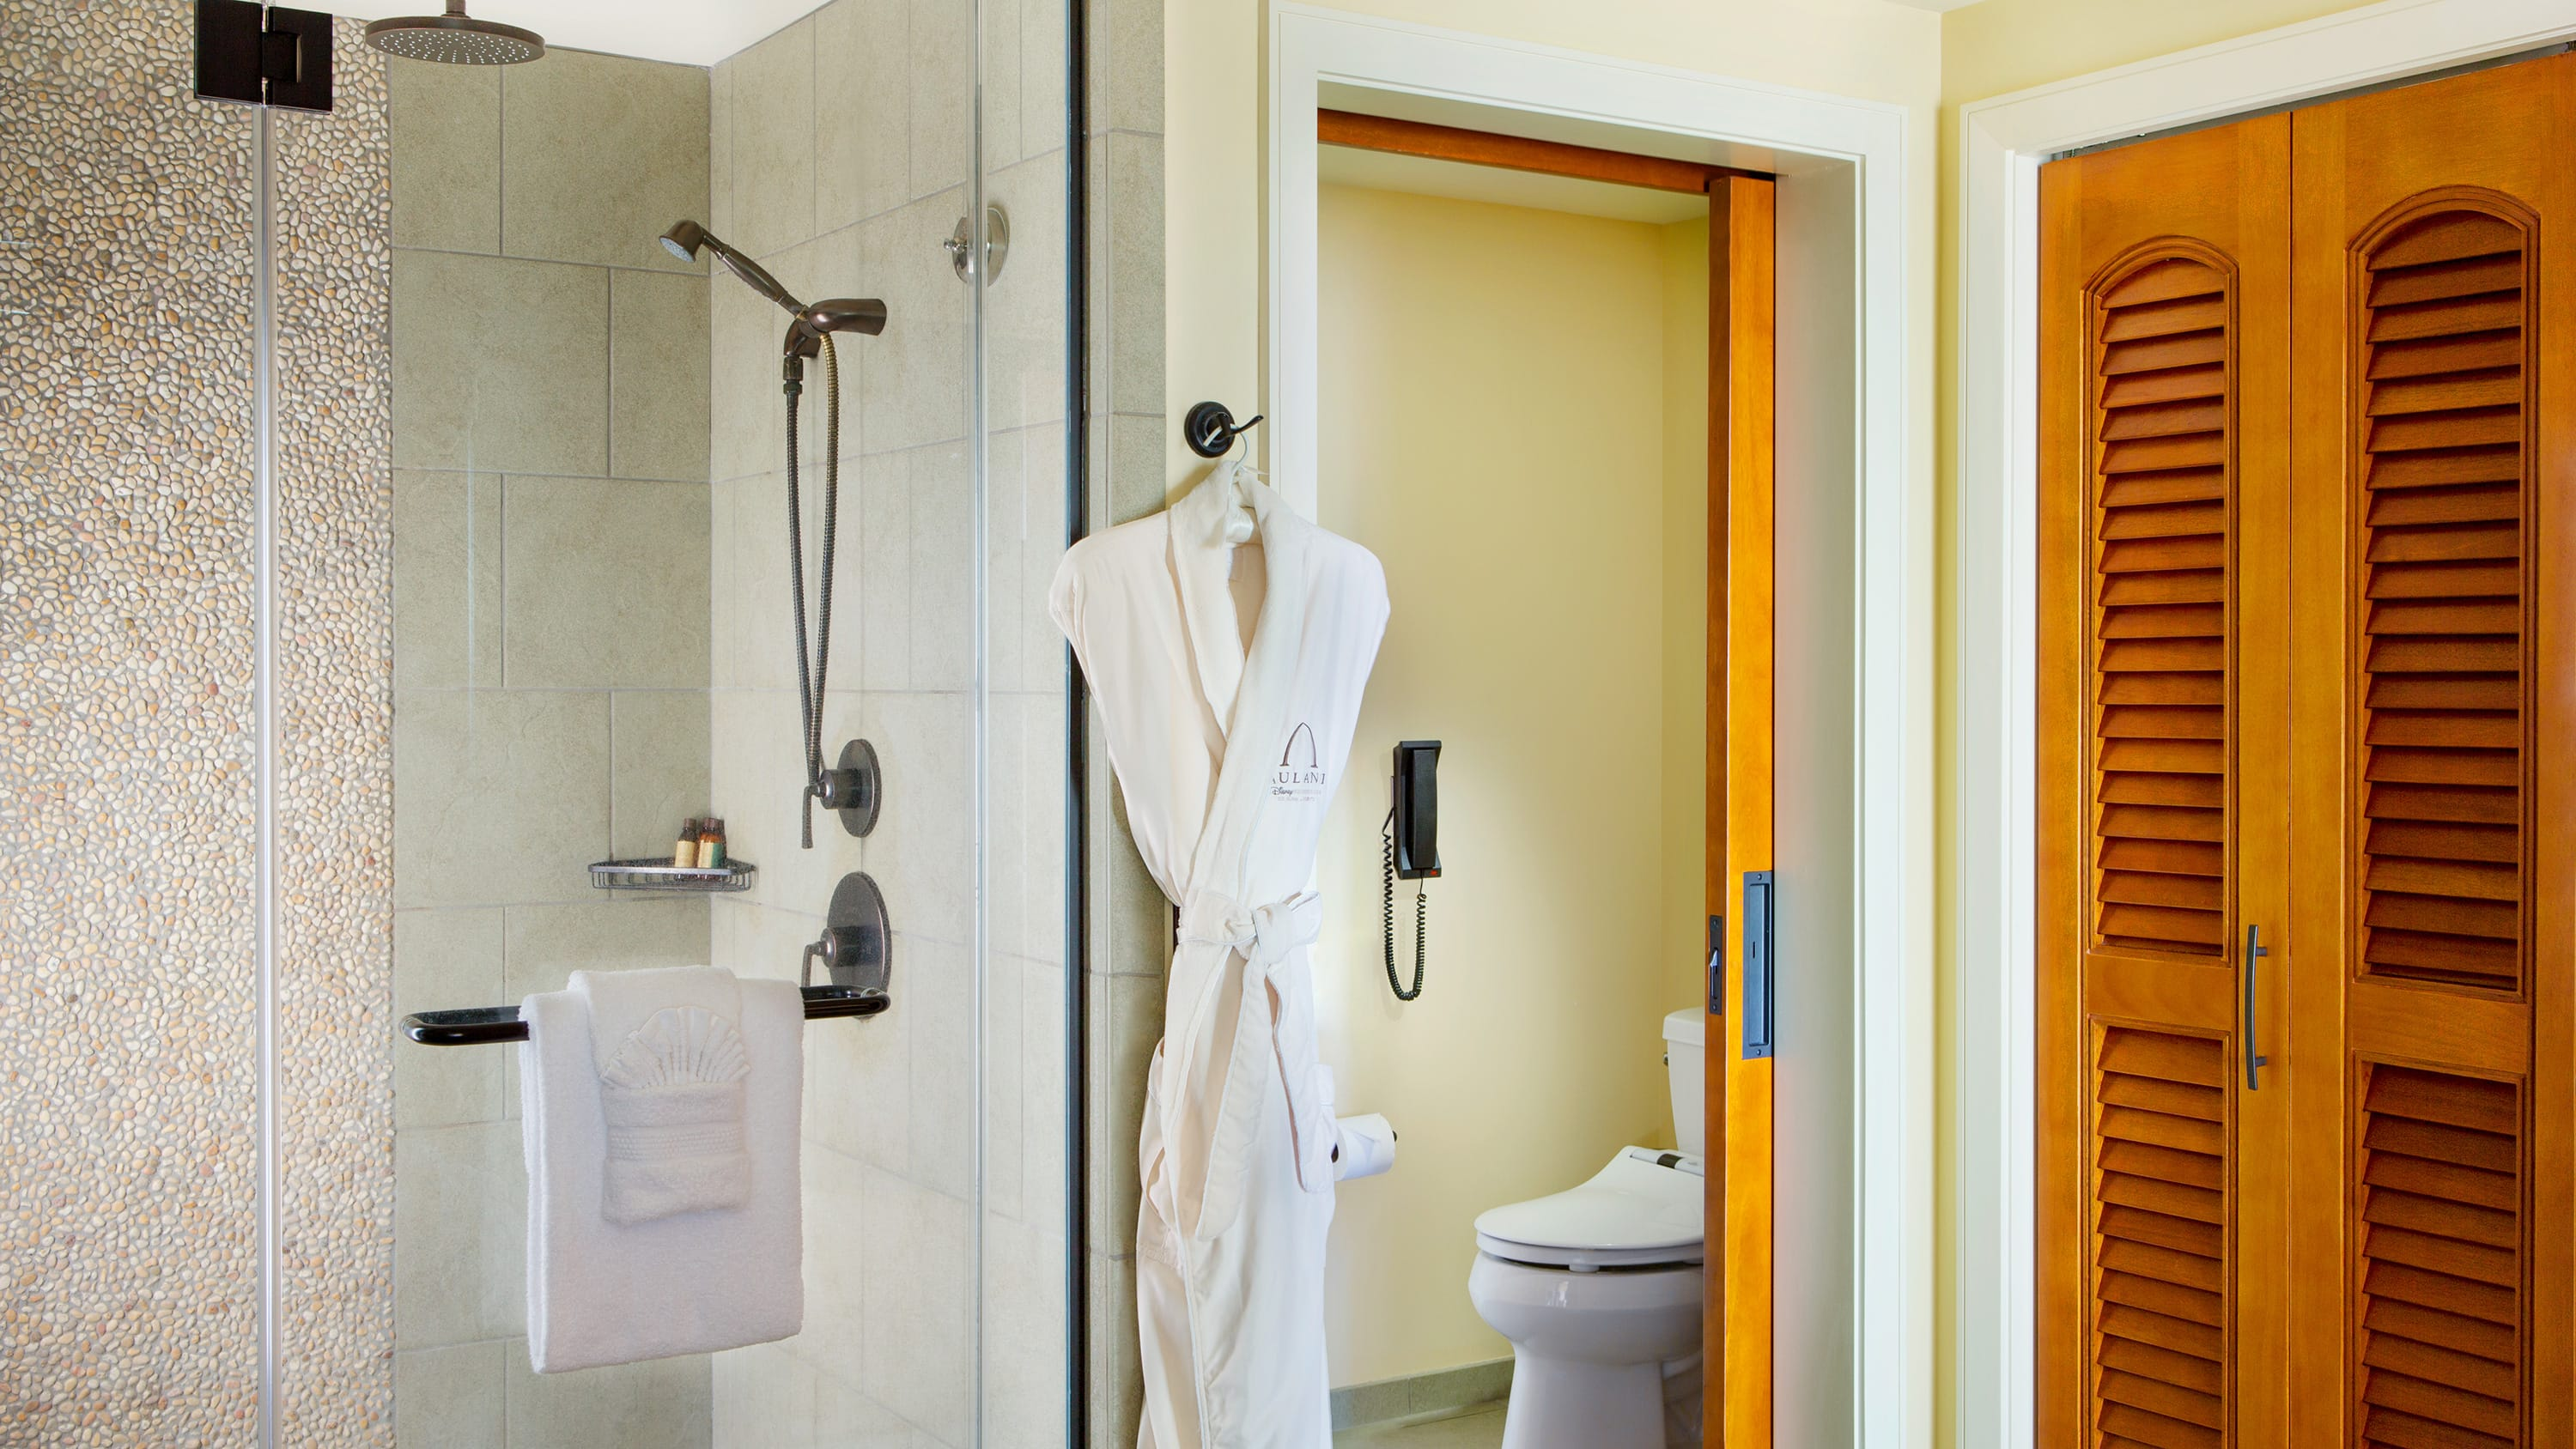 A bathrobe and a towel hang next to a shower near a toilet